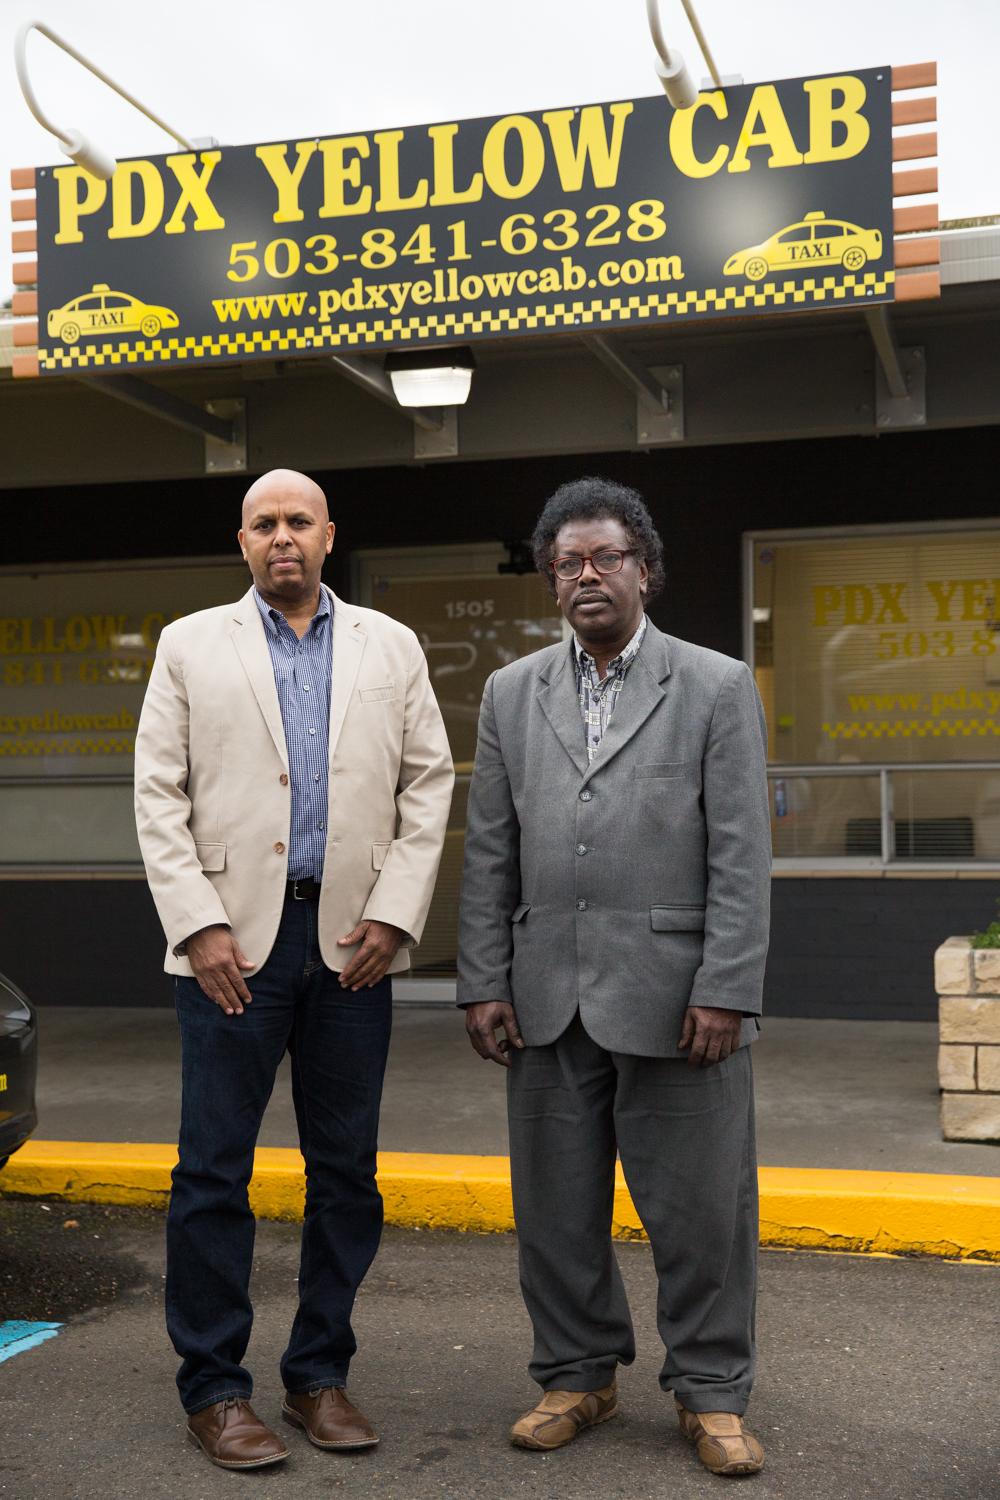 Dawood Ghedi, Operations Manager at PDX Yellow Cab, and Musse Olol of the Somali American Council of Oregon stand outside the company's East Portland location.